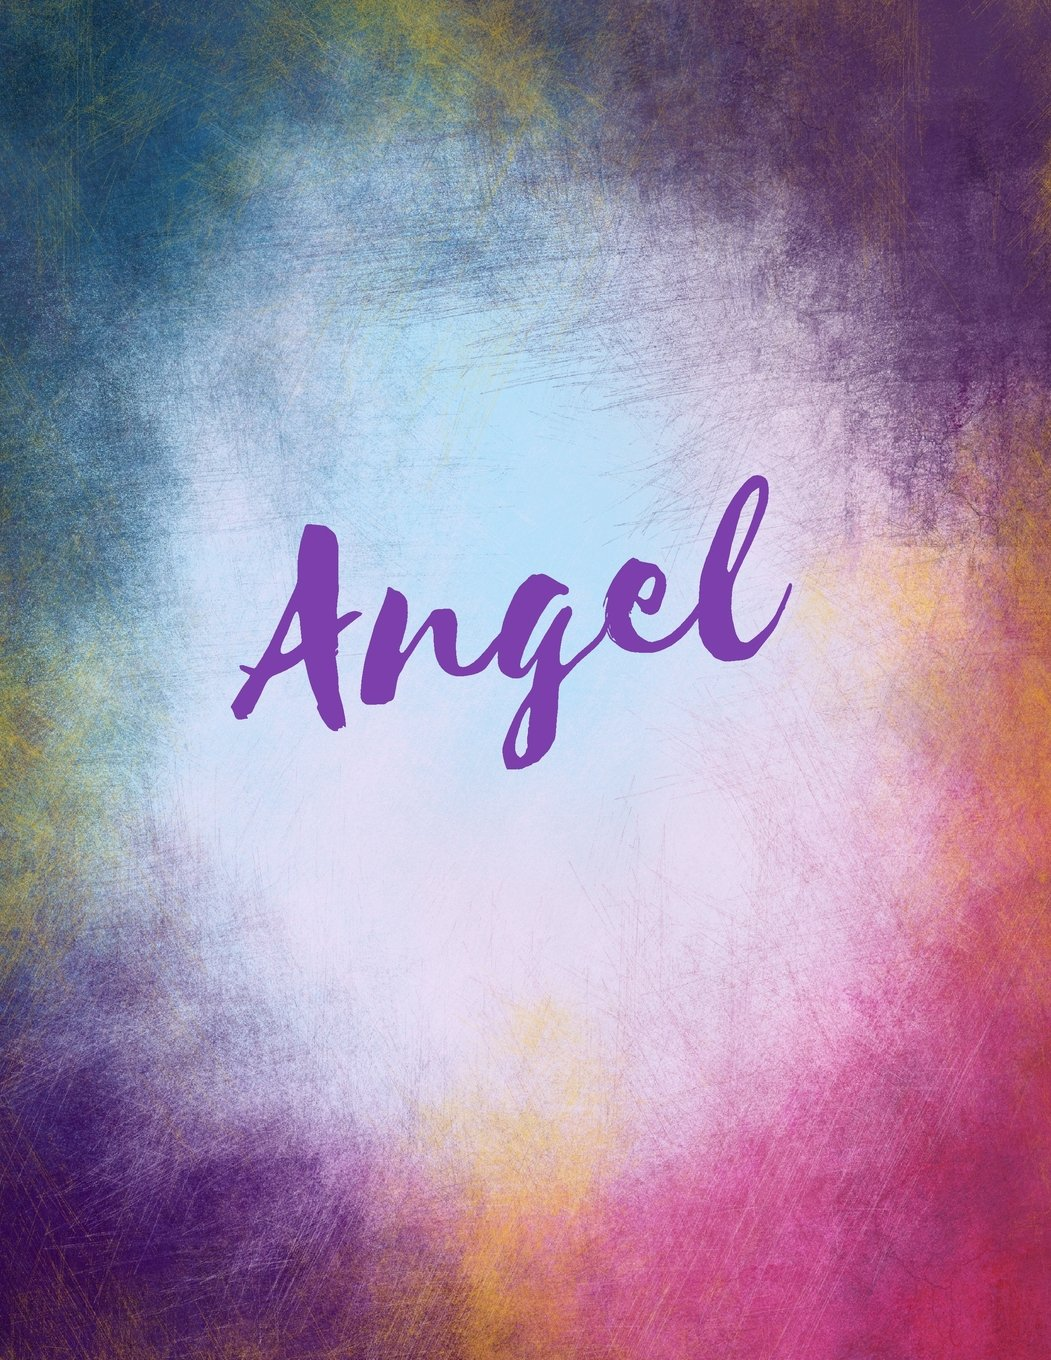 Angel: Angel sketchbook  journal  blank book. Large 8.5 x 11 Attractive watercolor wash purple pink orange & blue tones. arty stylish pretty journal for girls. pdf